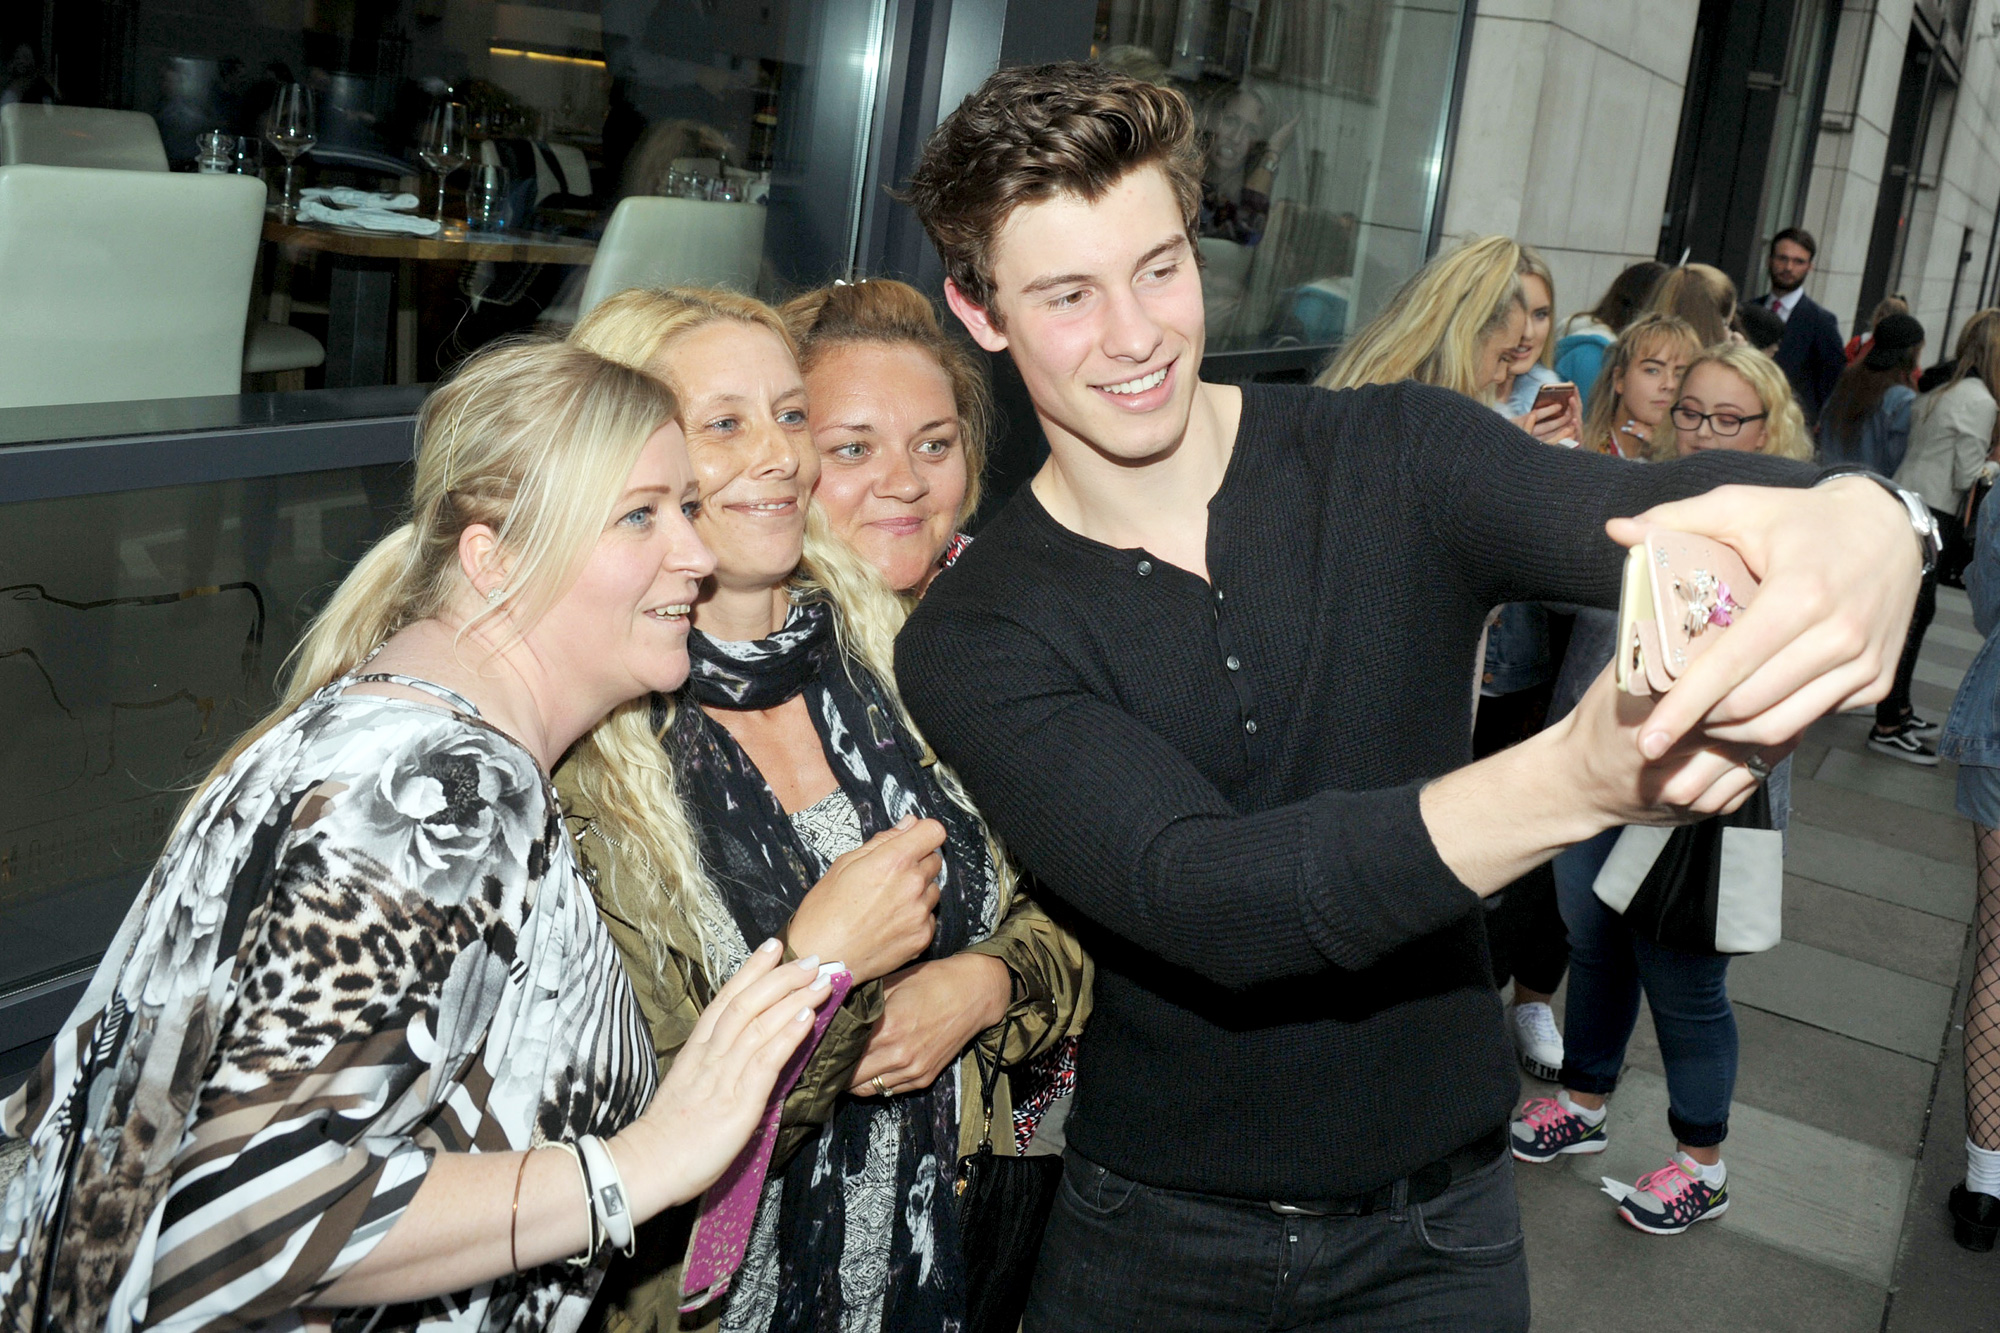 EXCLUSIVE: Shawn Mendes Arrives Outside The Morrison Hotel In Dublin